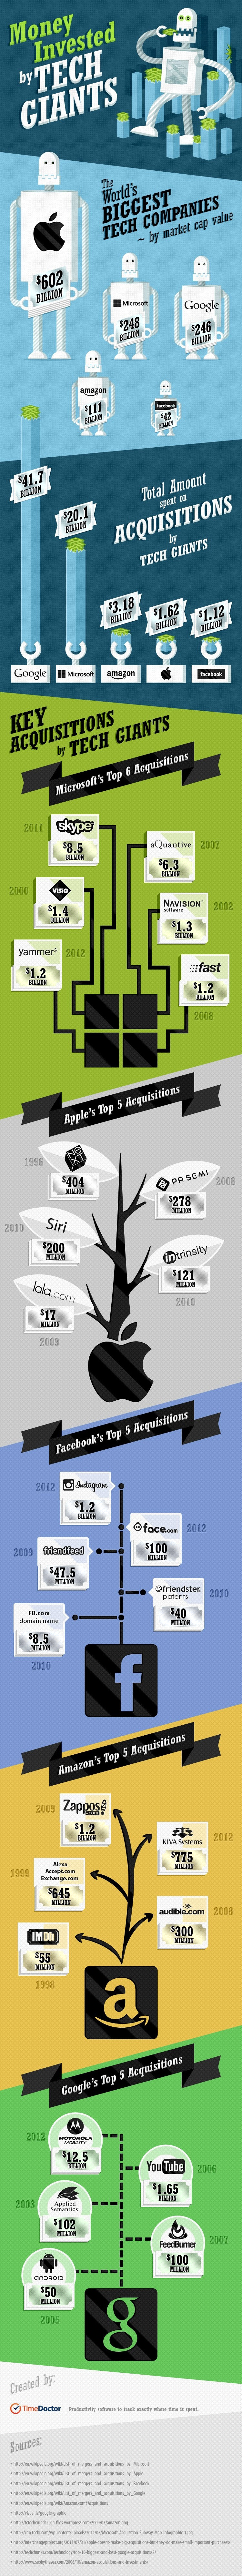 money-invested-by-tech-giants_50851b01293e9